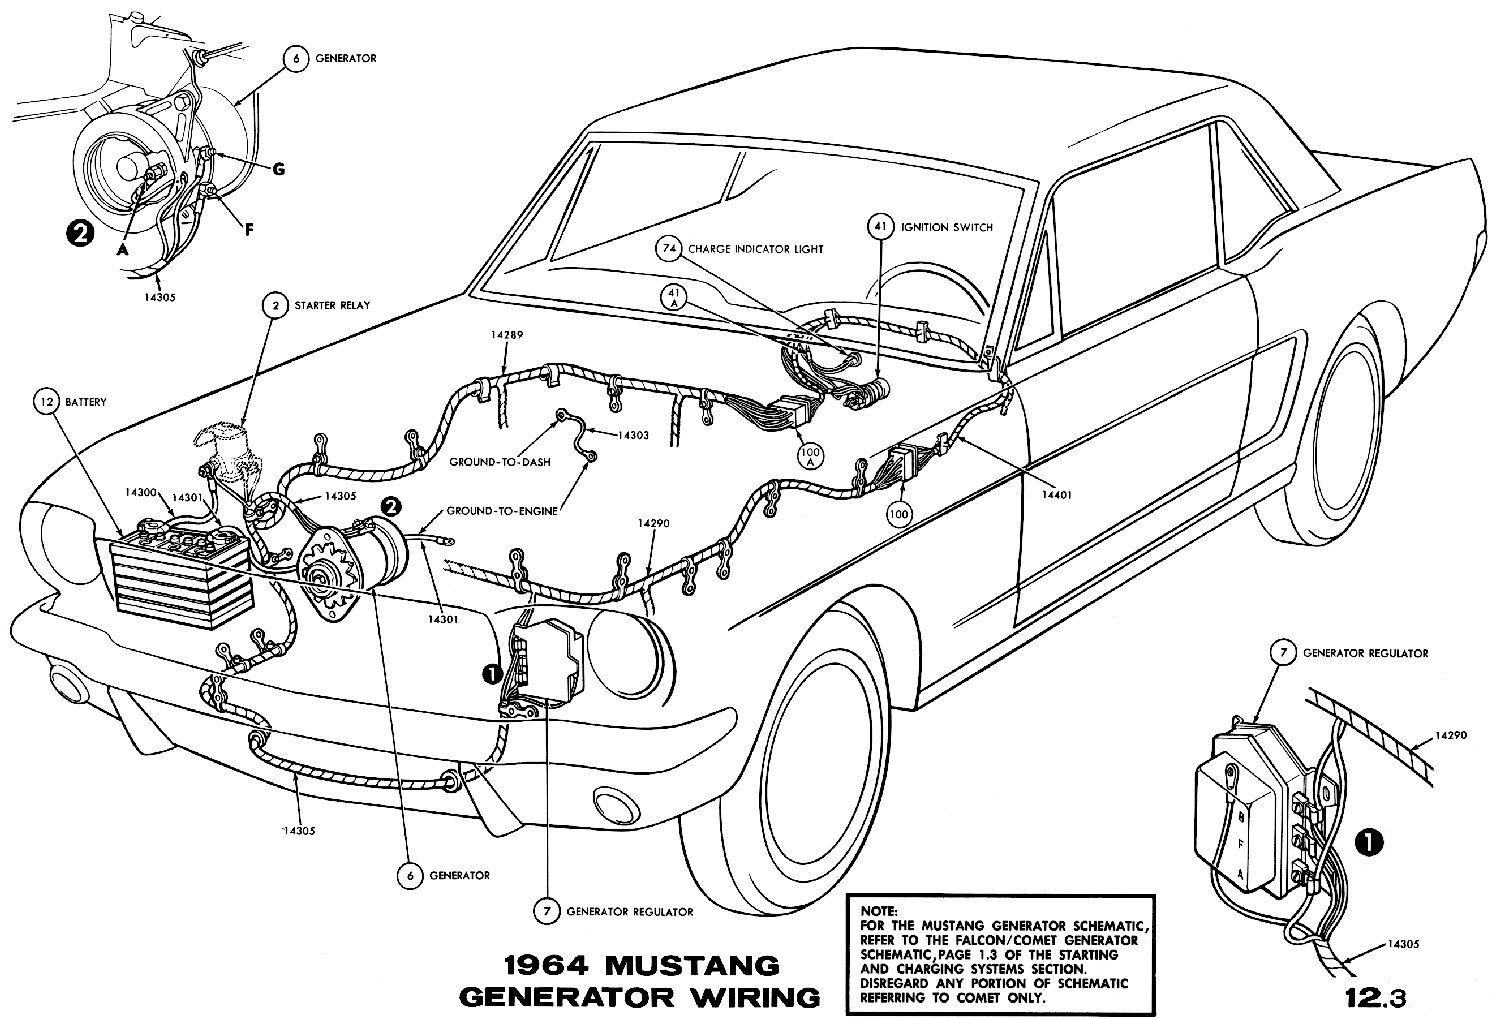 hight resolution of sm1964f 1964 mustang generator wiring pictorial or schematic starter relay